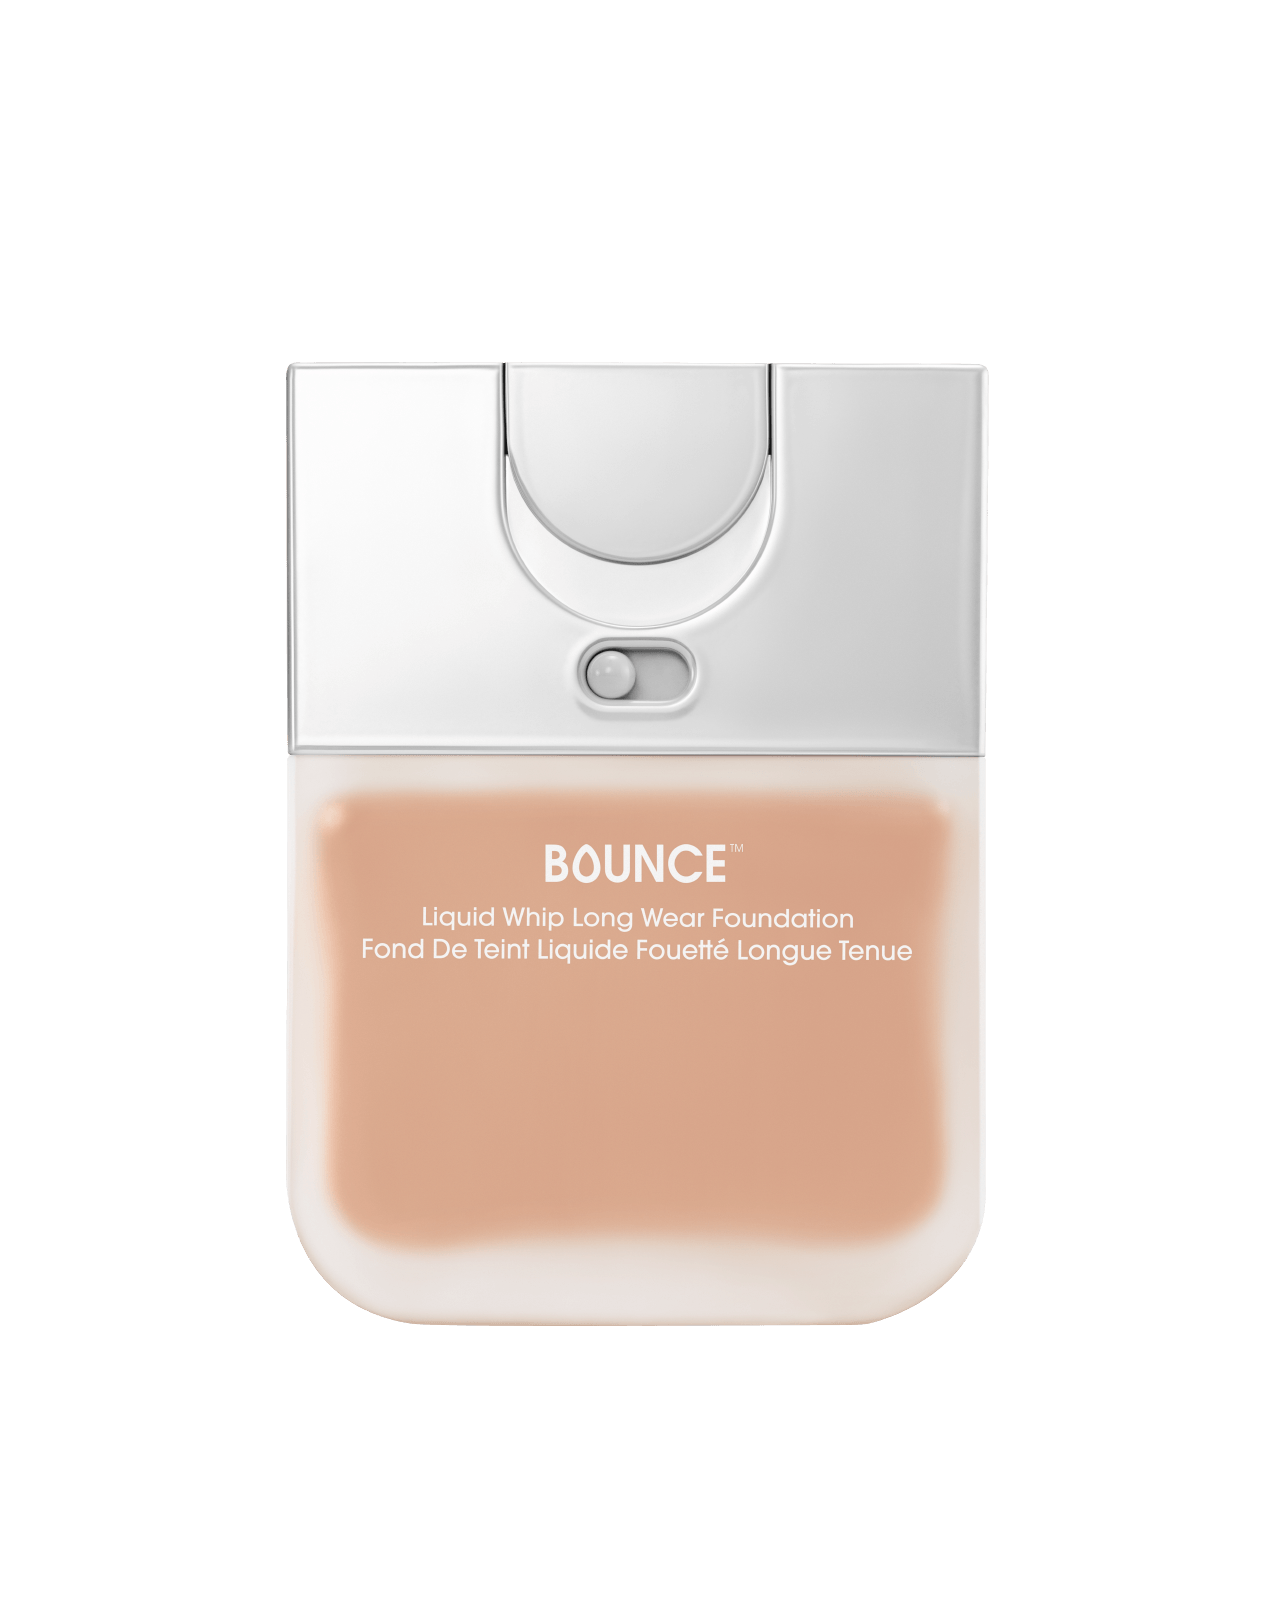 BOUNCE Liquid Foundation in shade 2.10 c